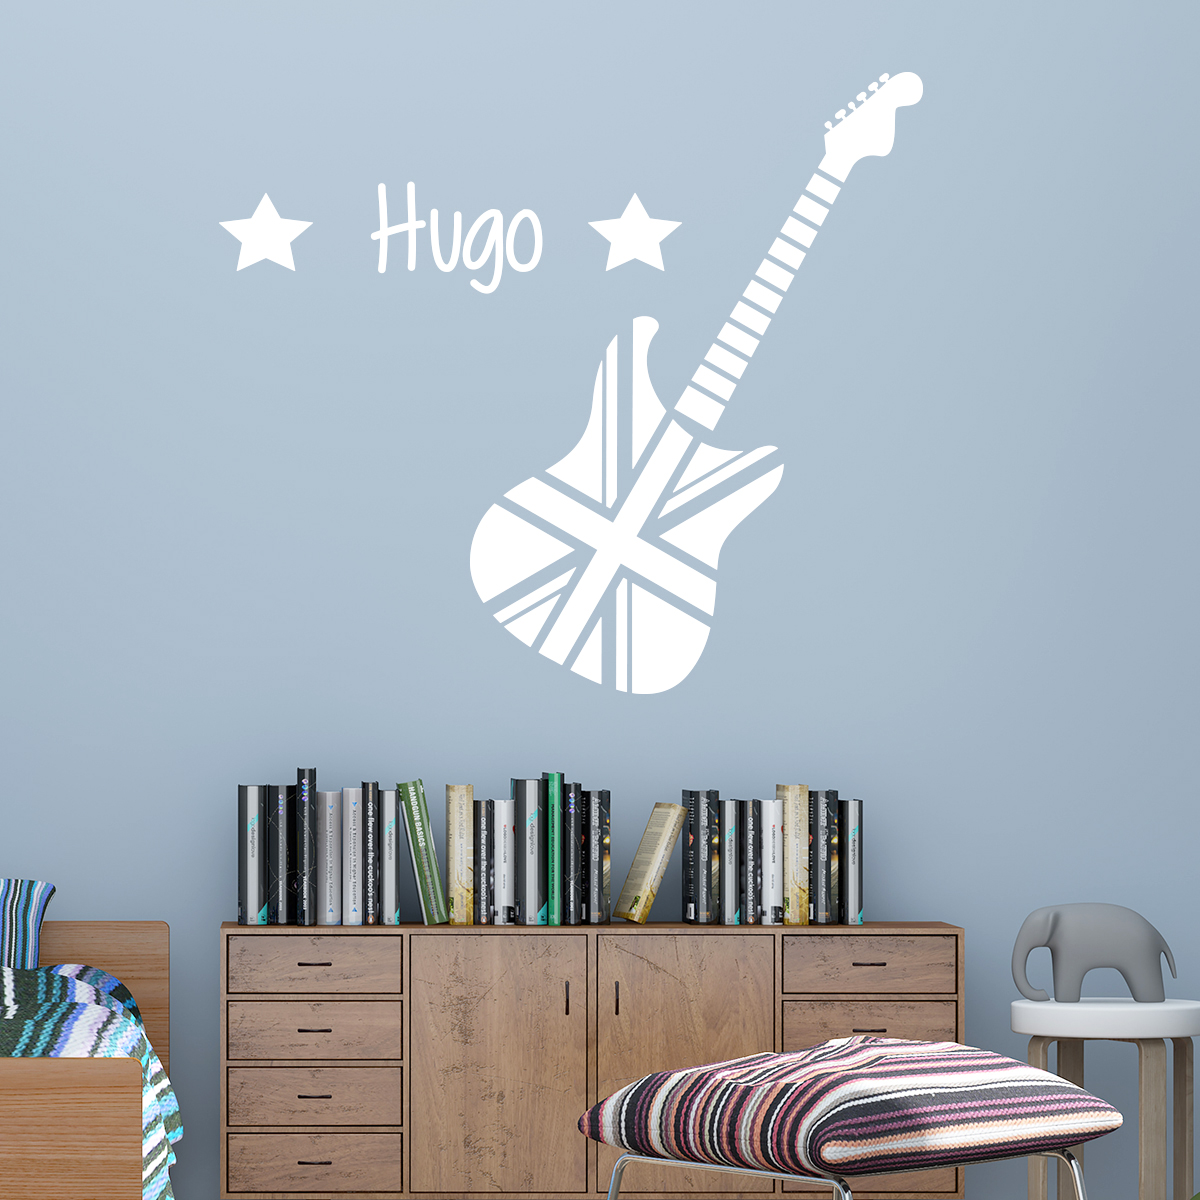 sticker pr nom personnalis guitare d angleterre villes et voyages londres ambiance sticker. Black Bedroom Furniture Sets. Home Design Ideas